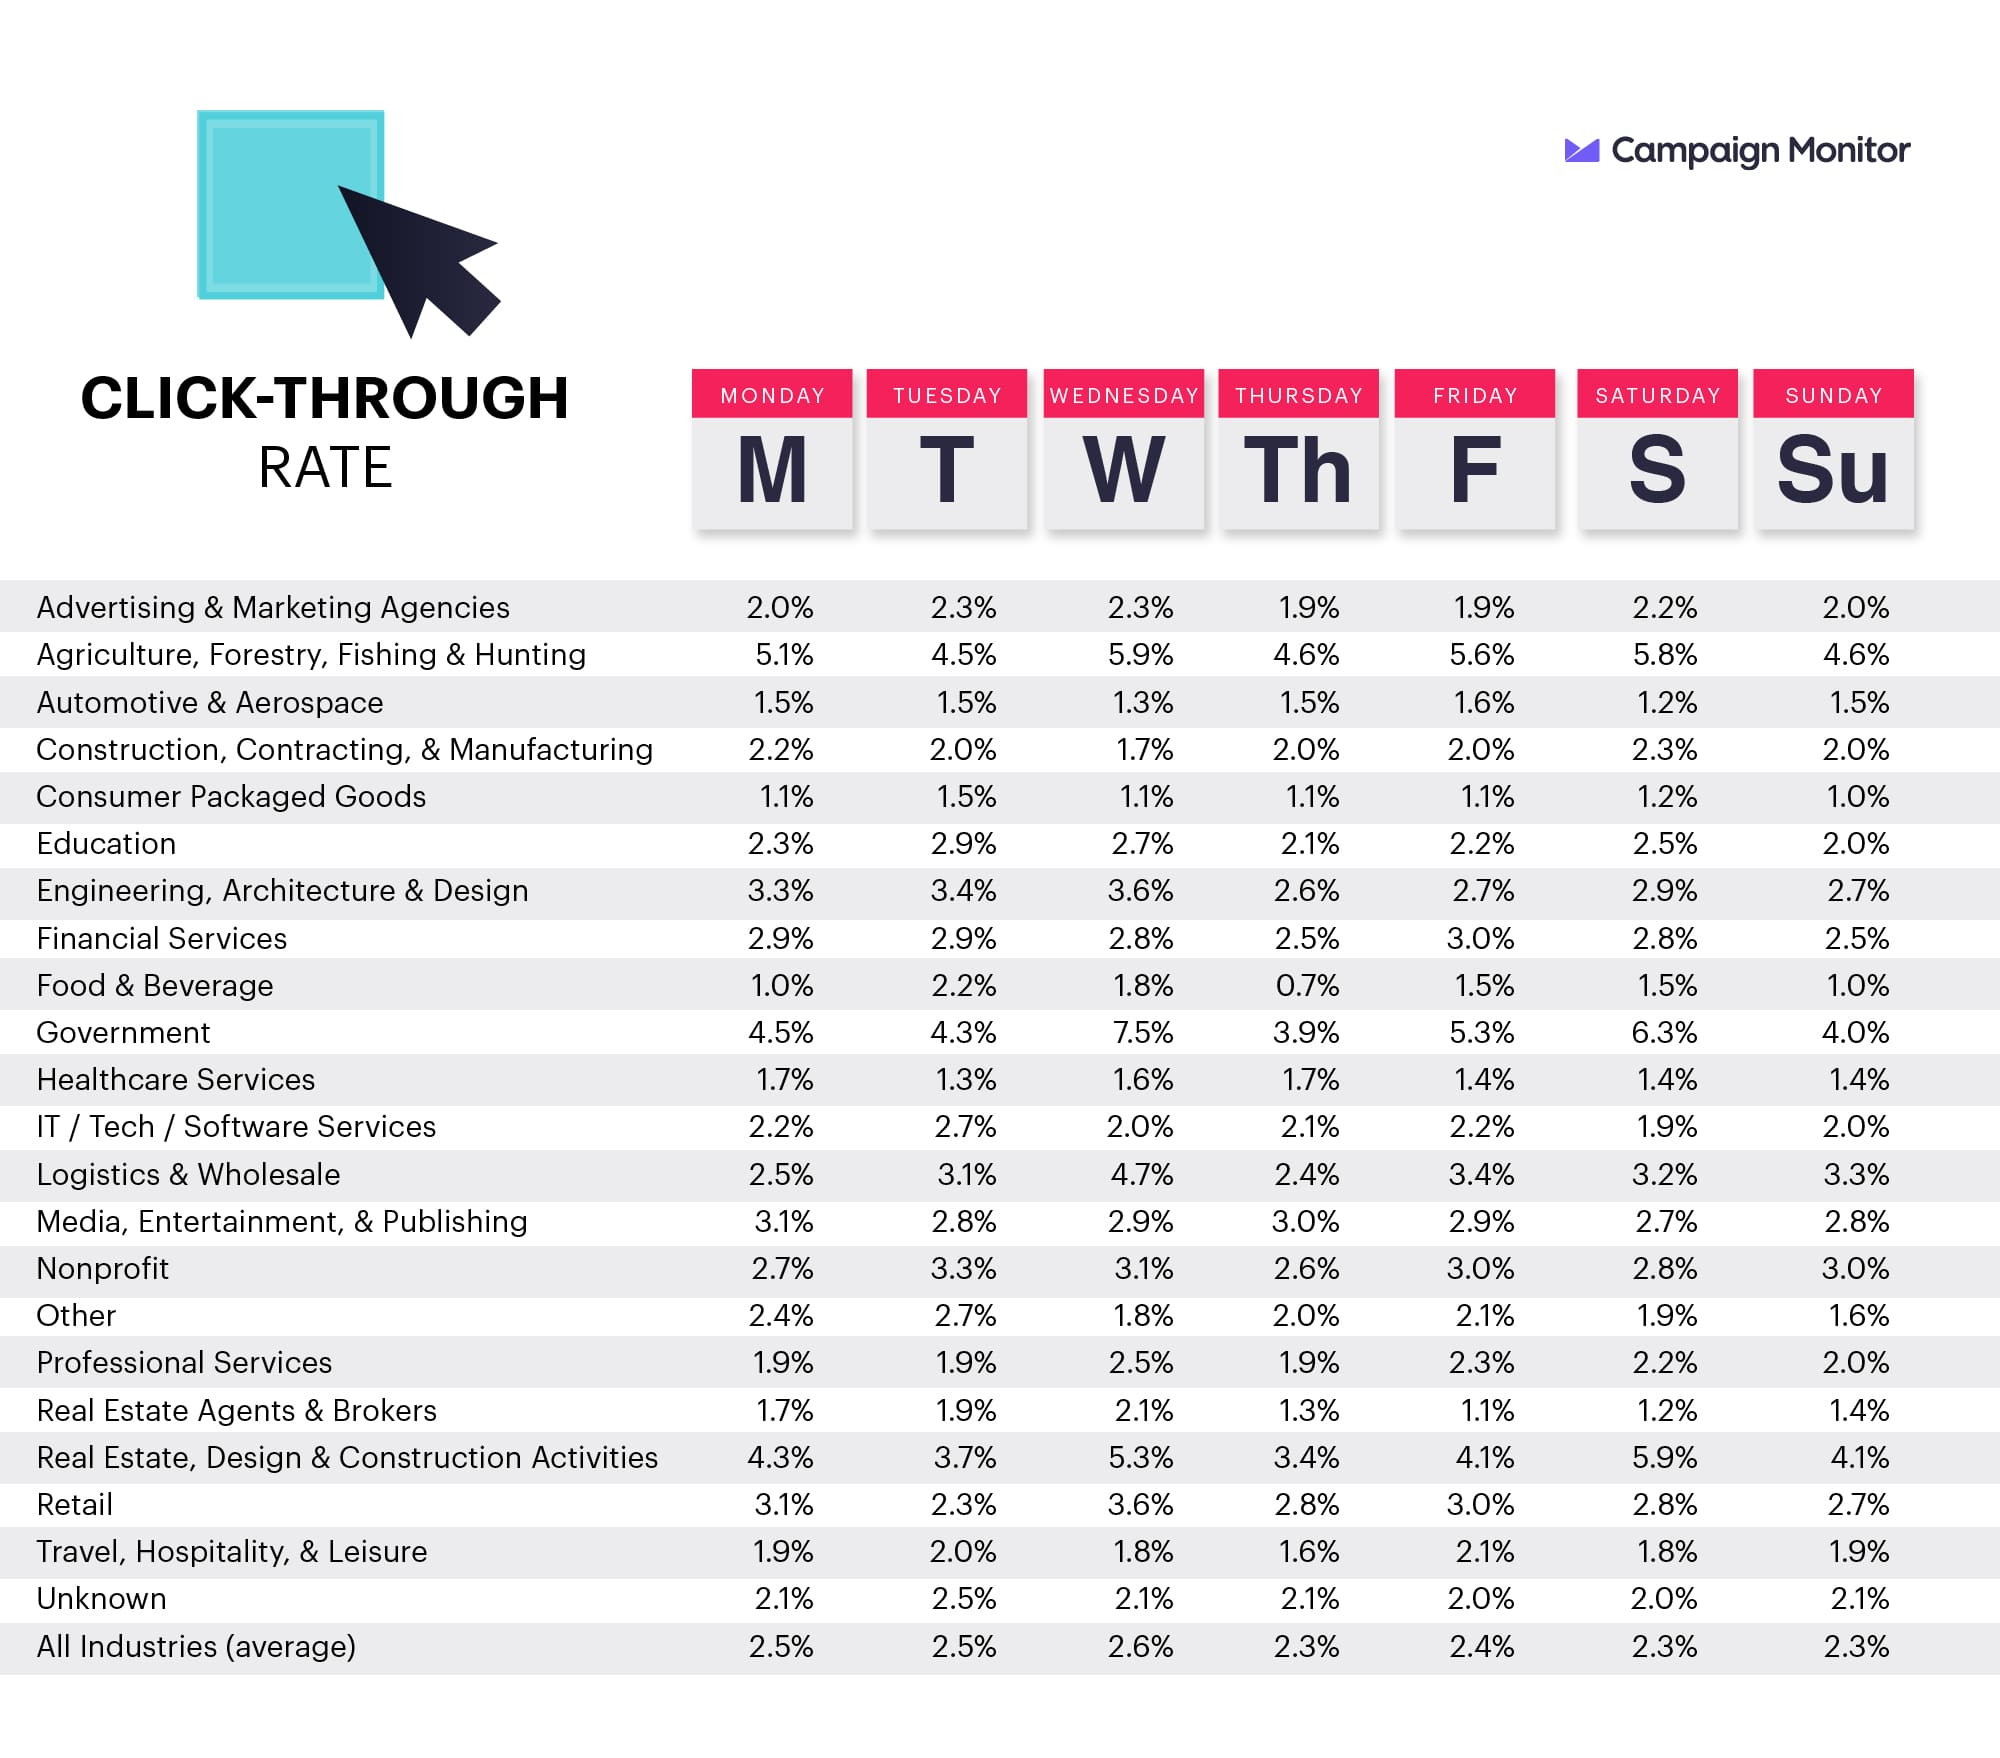 UK email click-through rates by industry and by day of the week